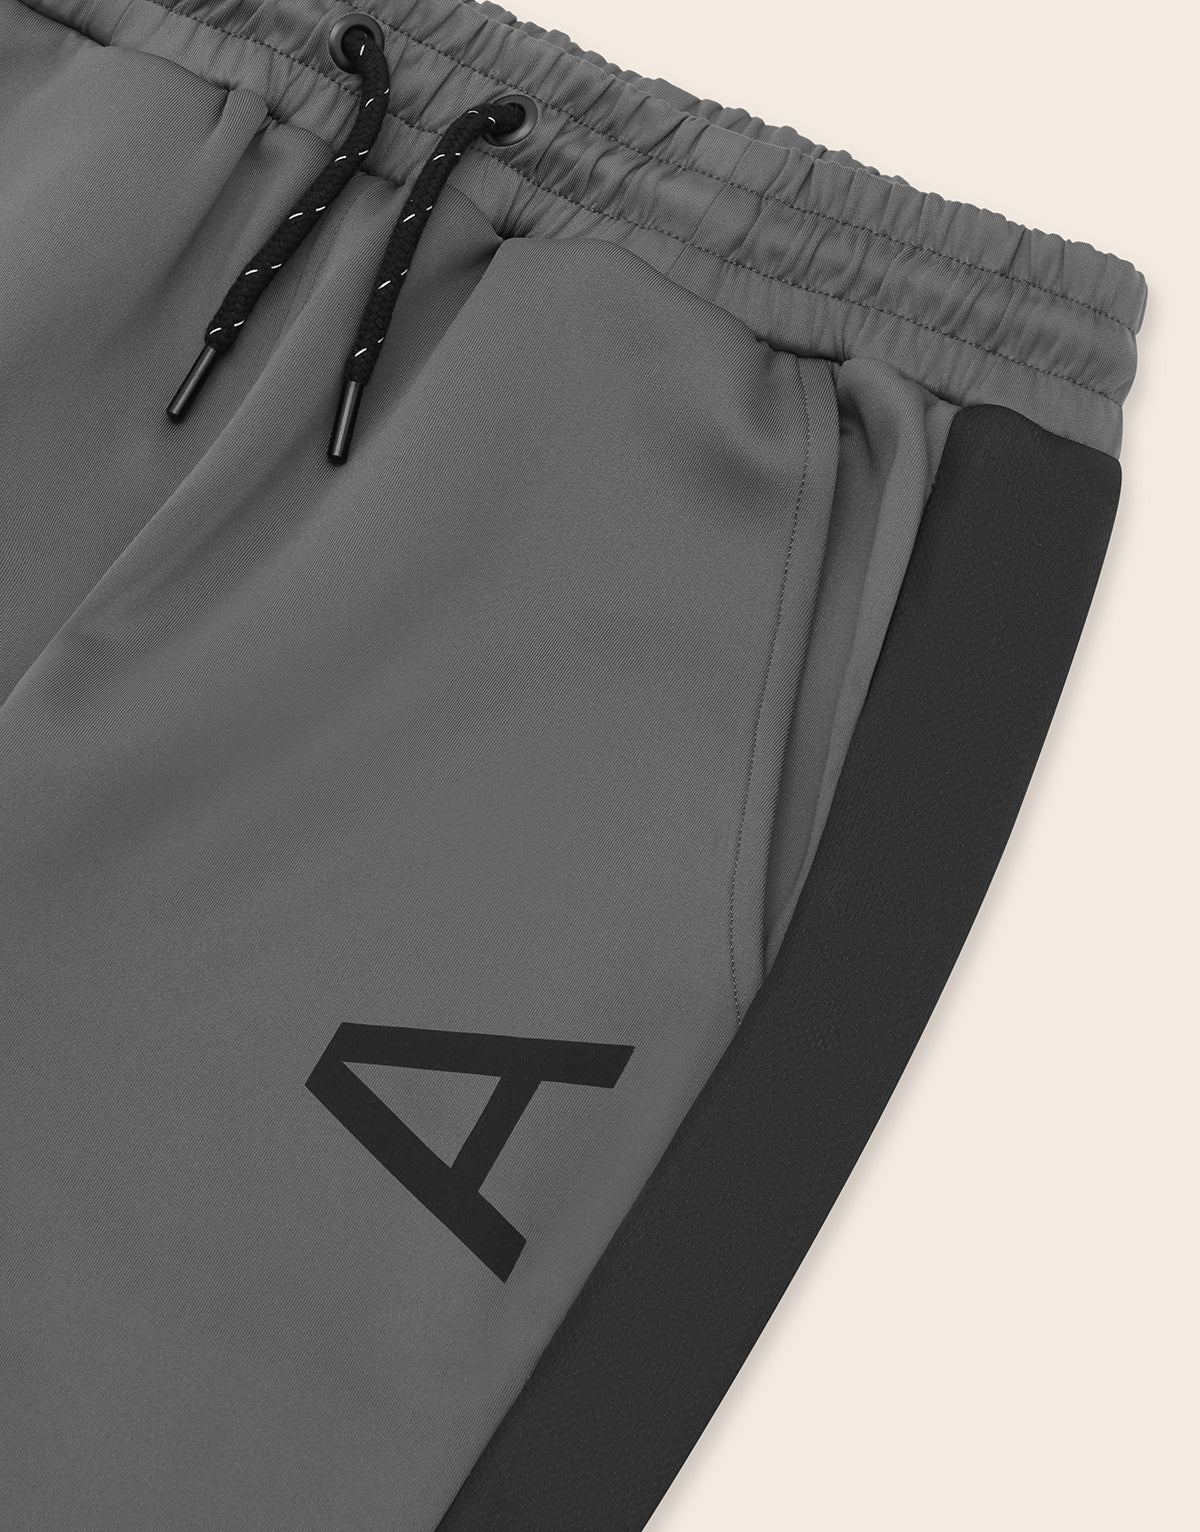 Miletus Joggers Grey & Black - Arcminute